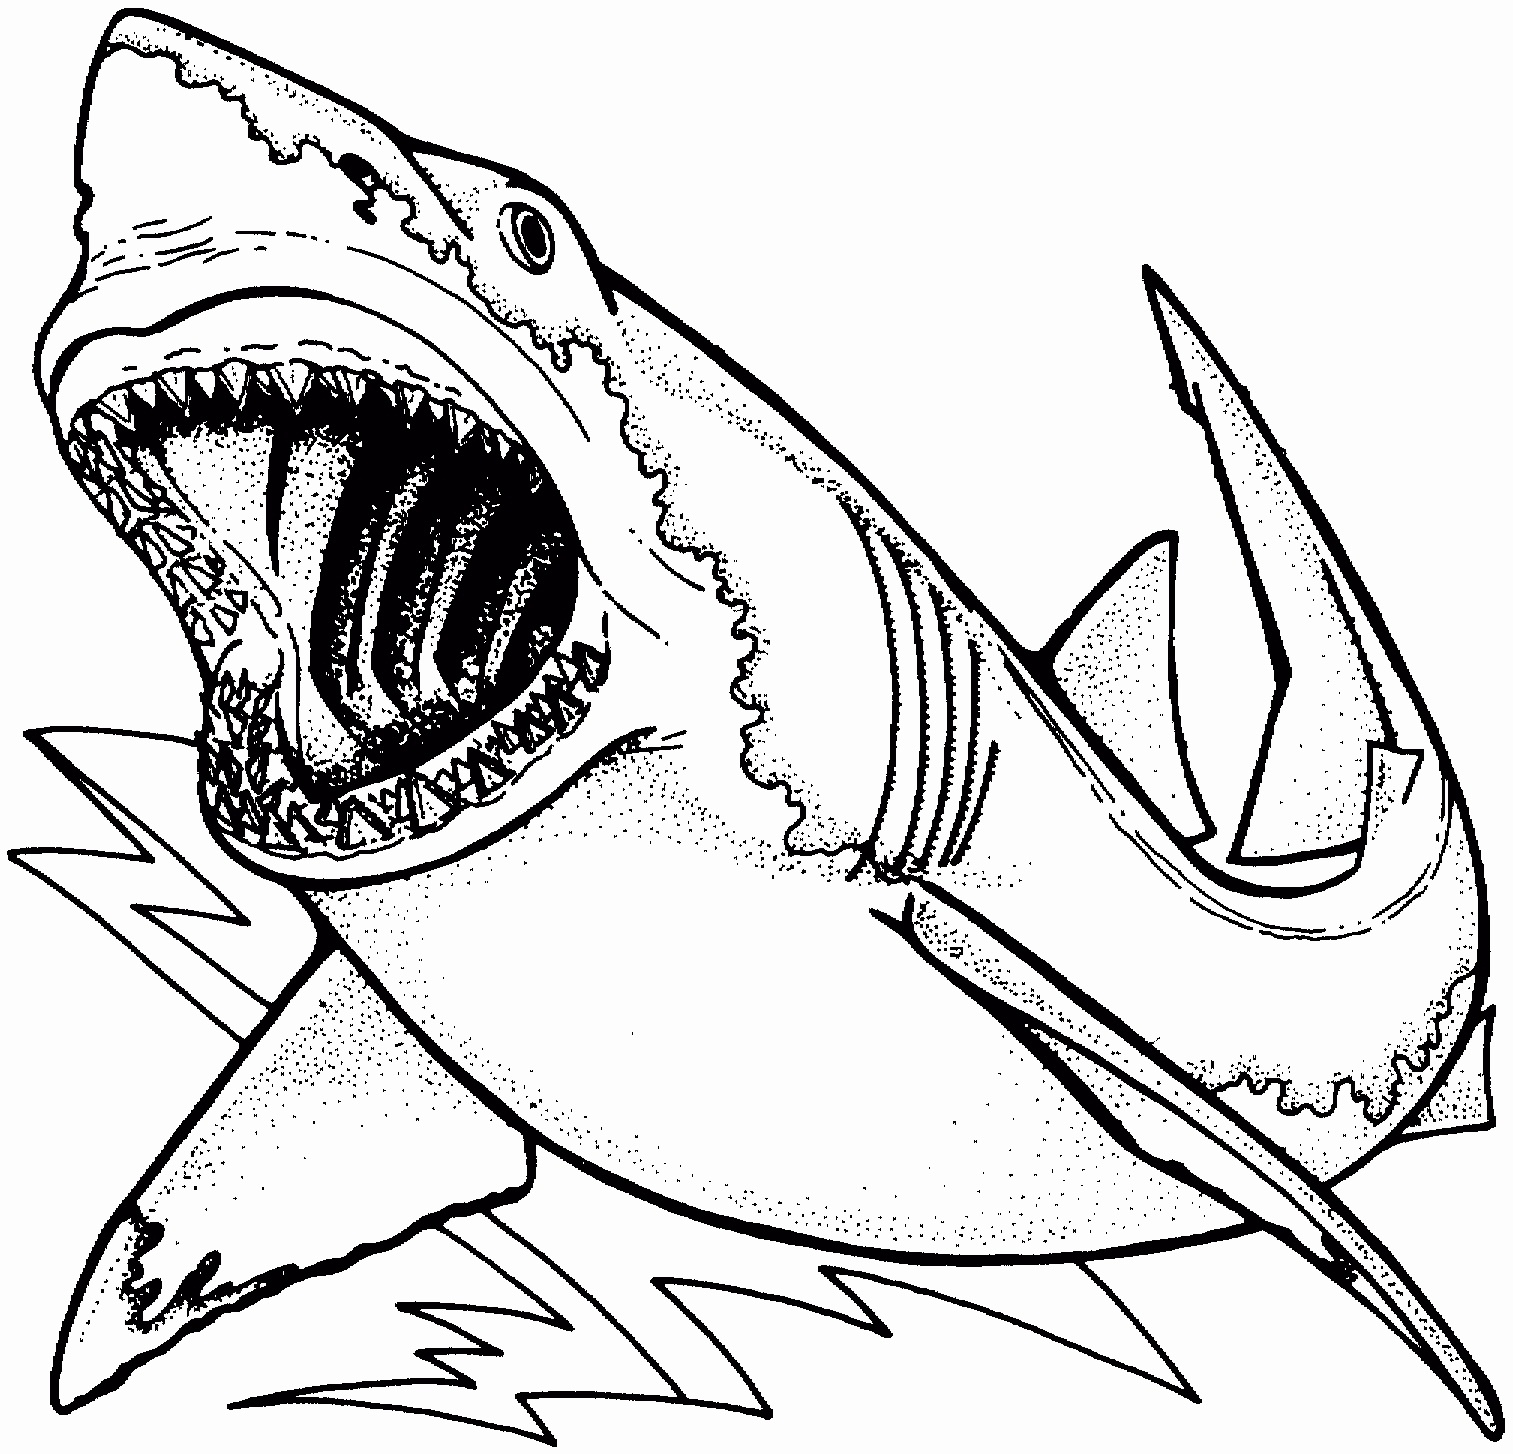 Printable Shark Pictures Luxury Hammerhead Shark Coloring Pages Free - Free Printable Shark Coloring Pages